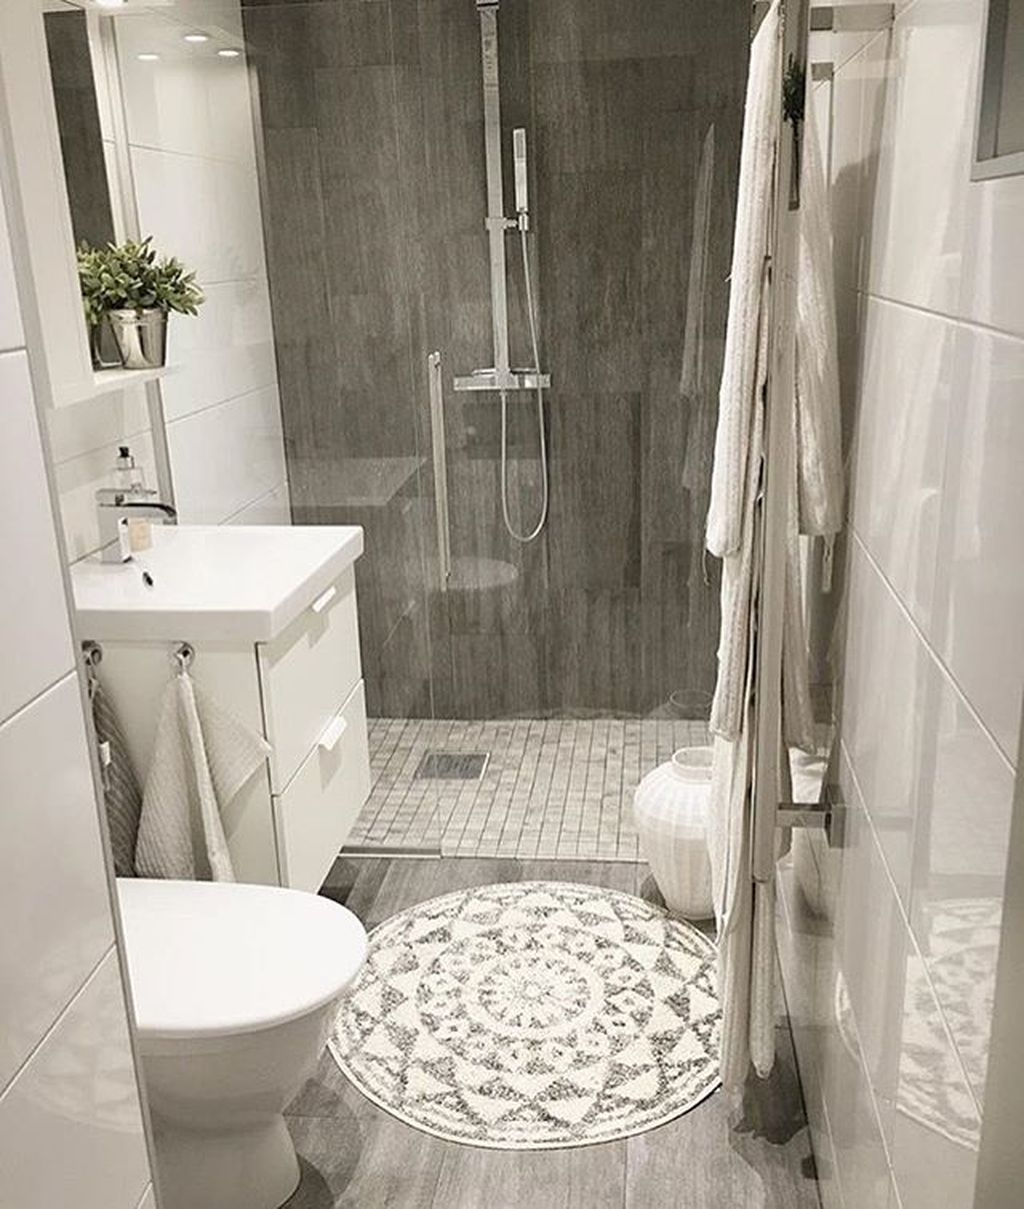 Images Of Small Bathroom Designs In India: 39 Cool And Stylish Small Bathroom Design Ideas